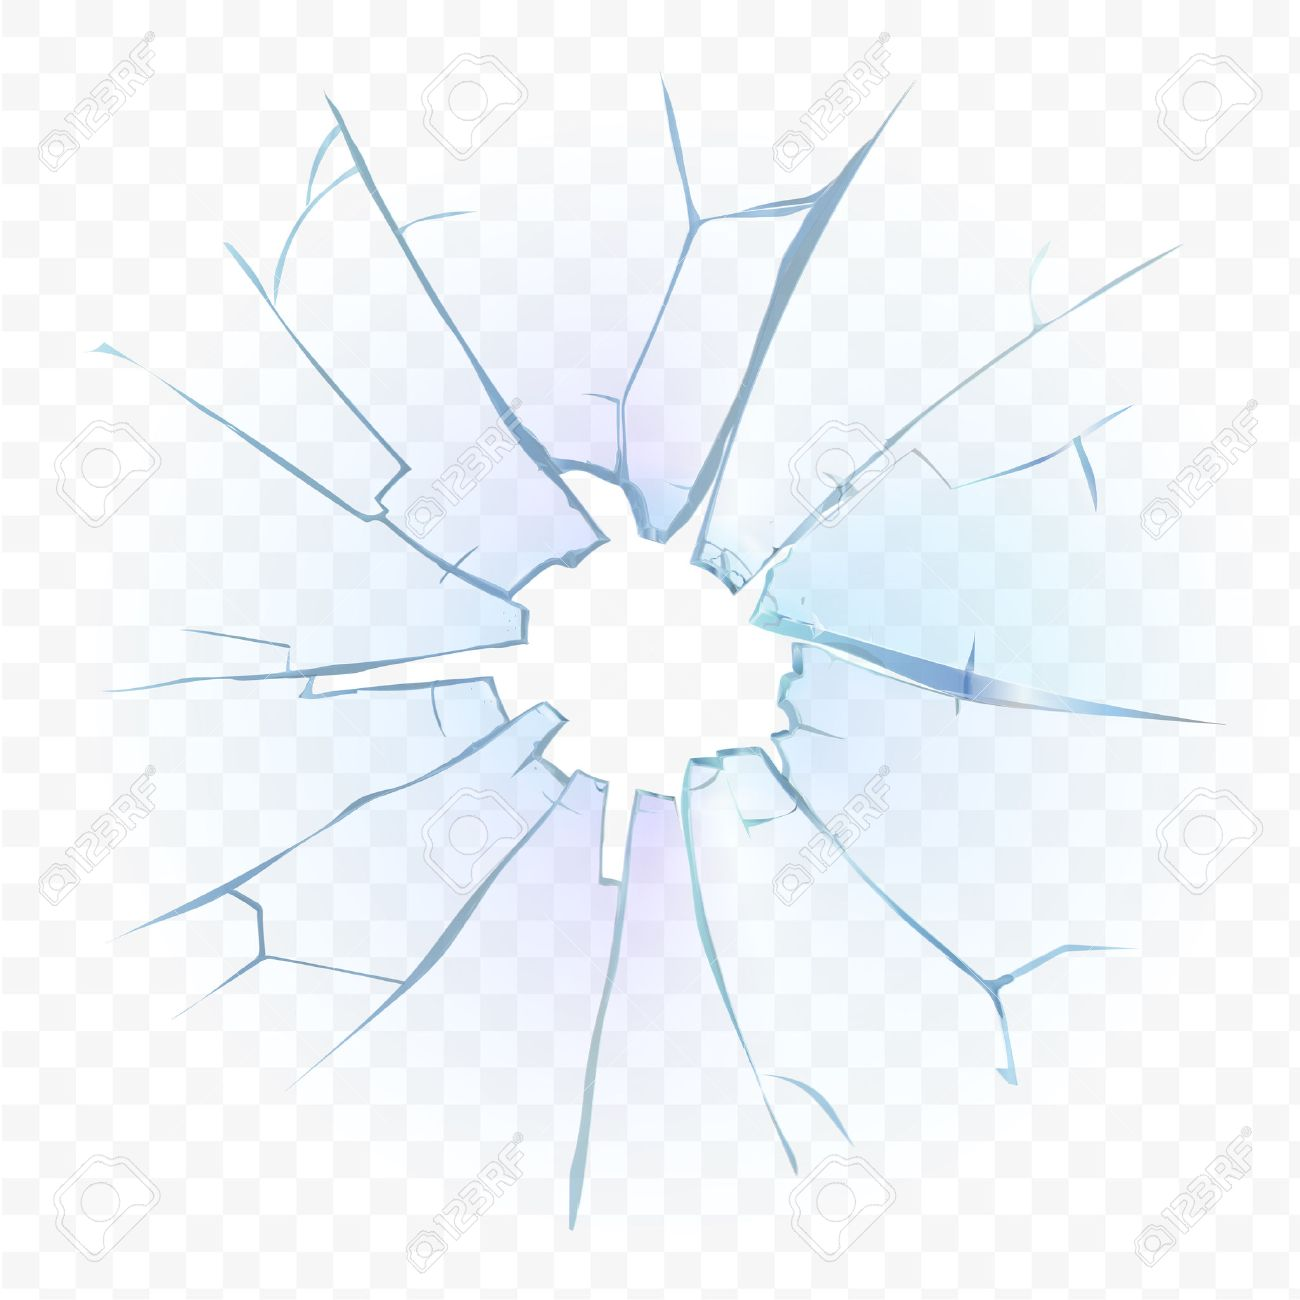 Broken transparent glass or frosted window pane on checkered plaid background. Vector illustration. - 59952239